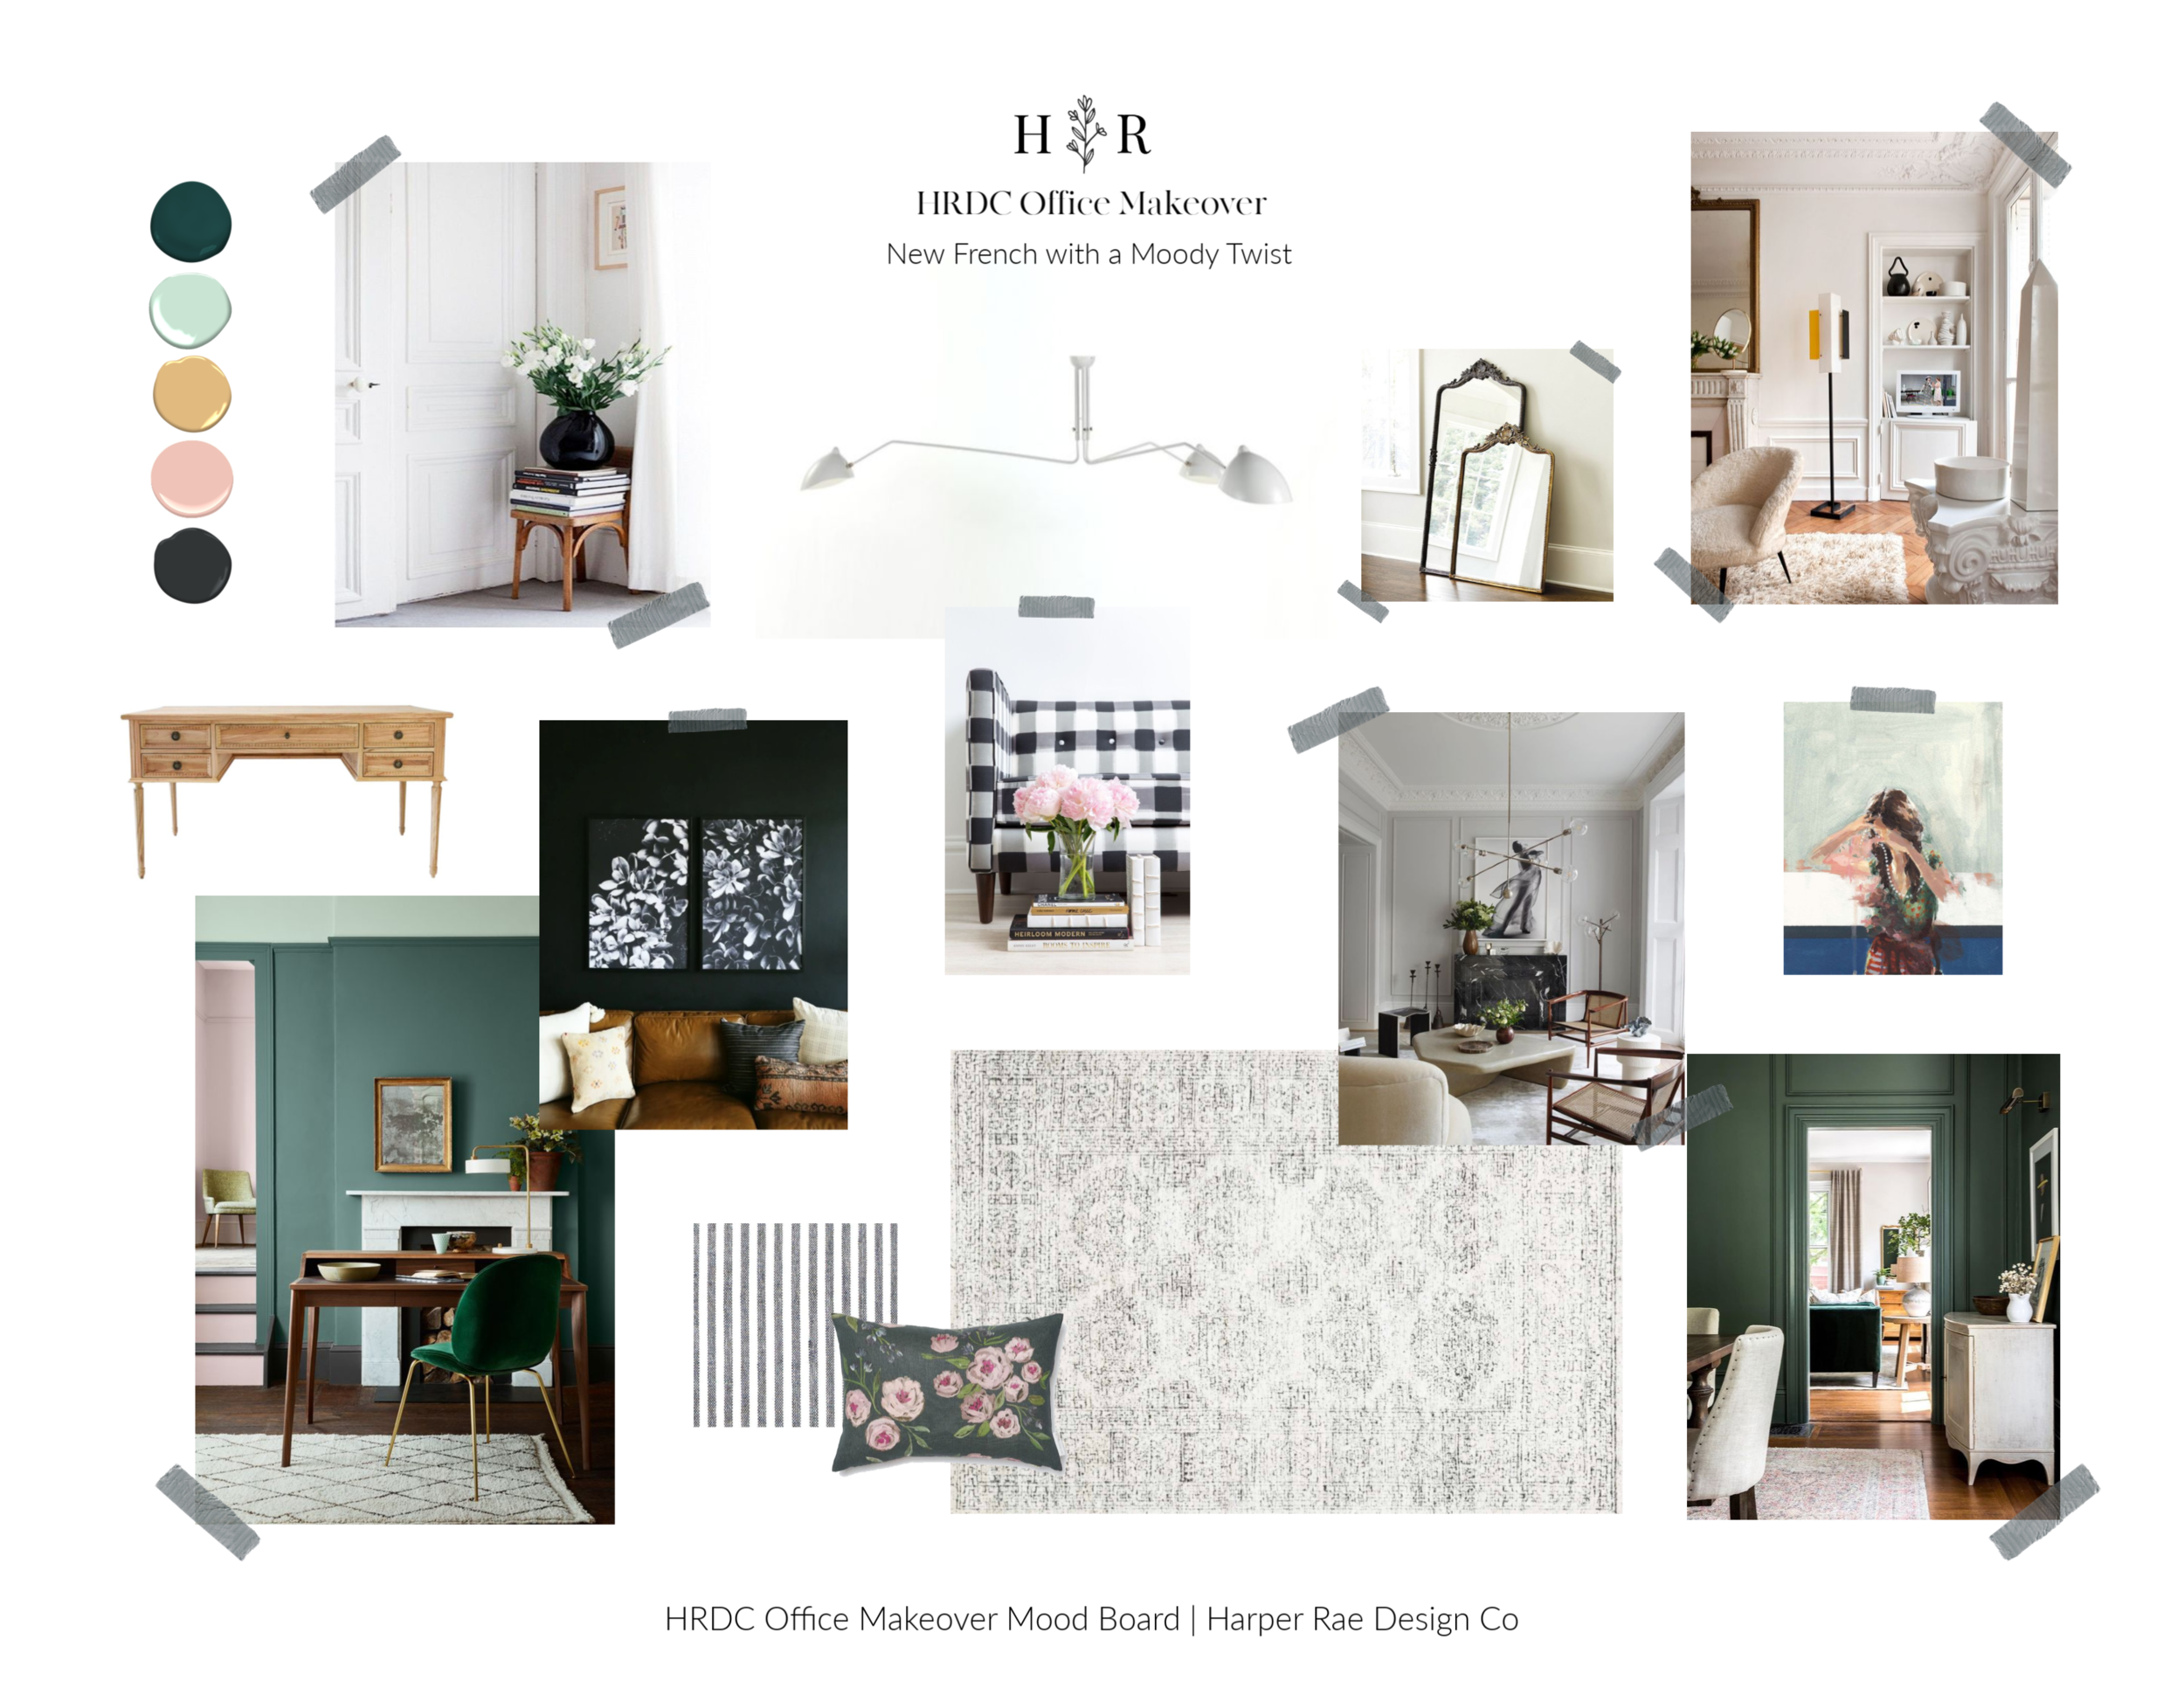 New French Office Makeover Mood Board by Harper Rae Design Co